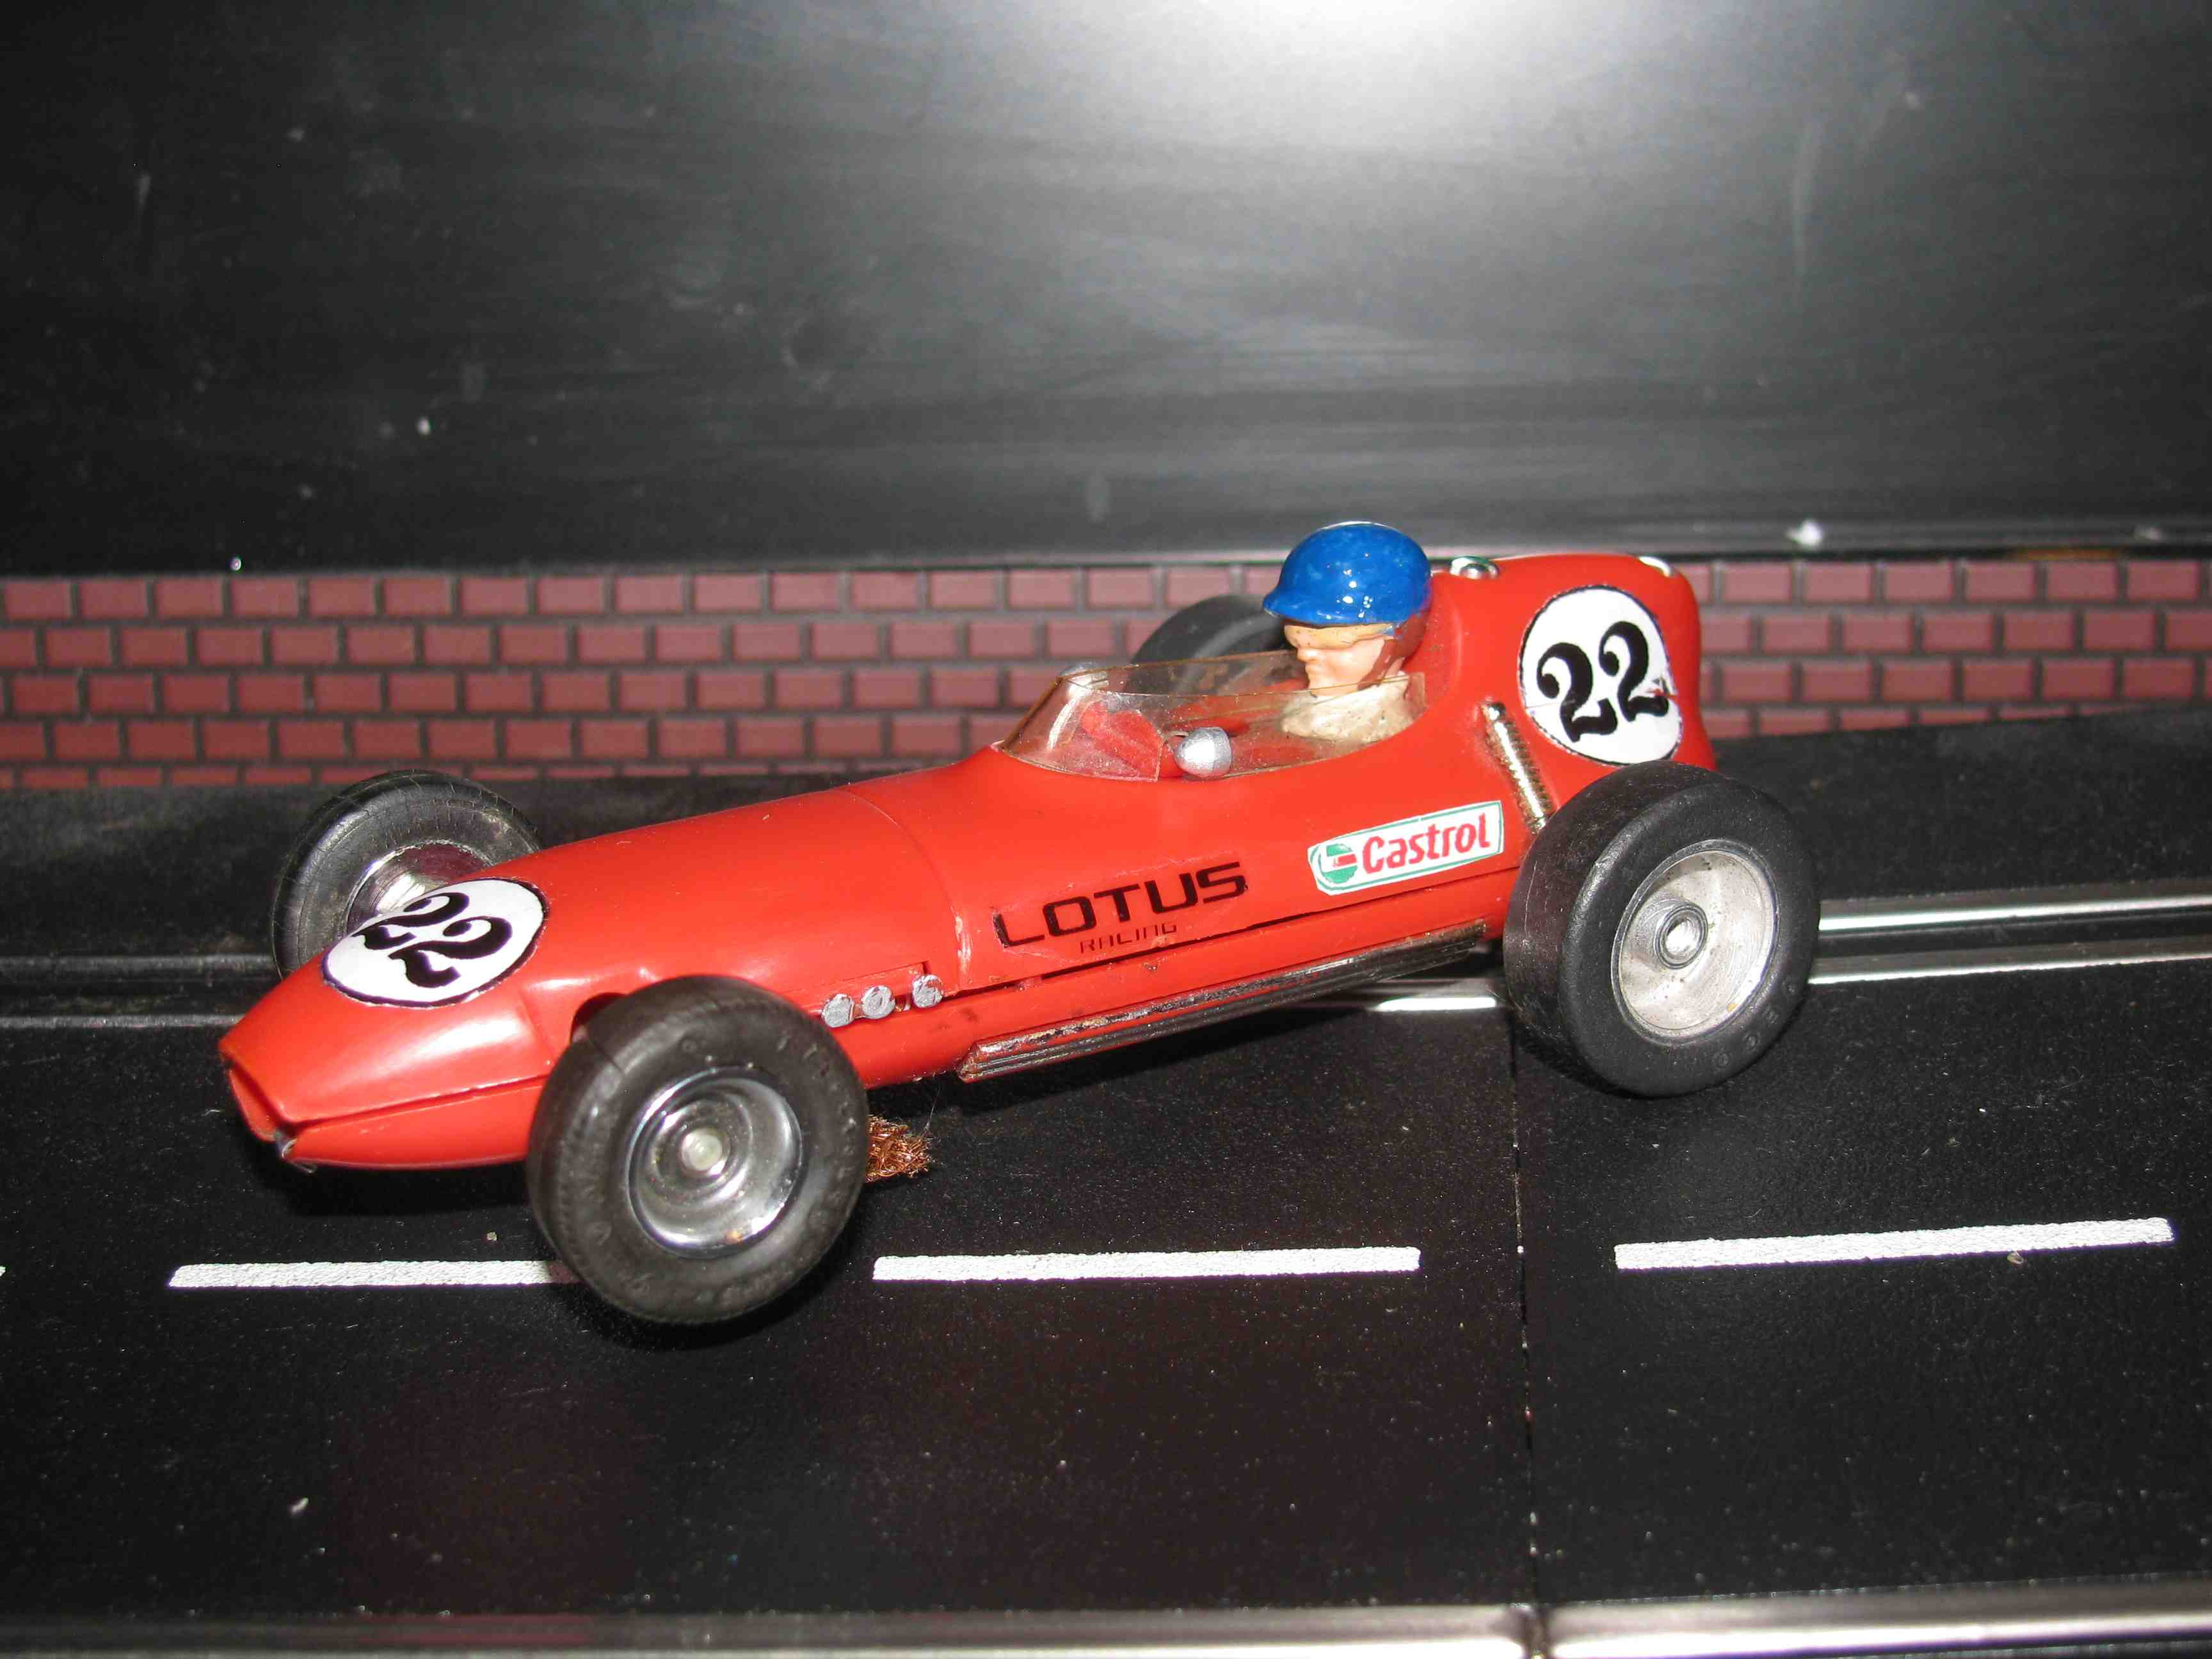 * SOLD * Vintage Scalextric Triang Lotus MM/C54 Slot Car 1/32 Scale – Red, Car 22